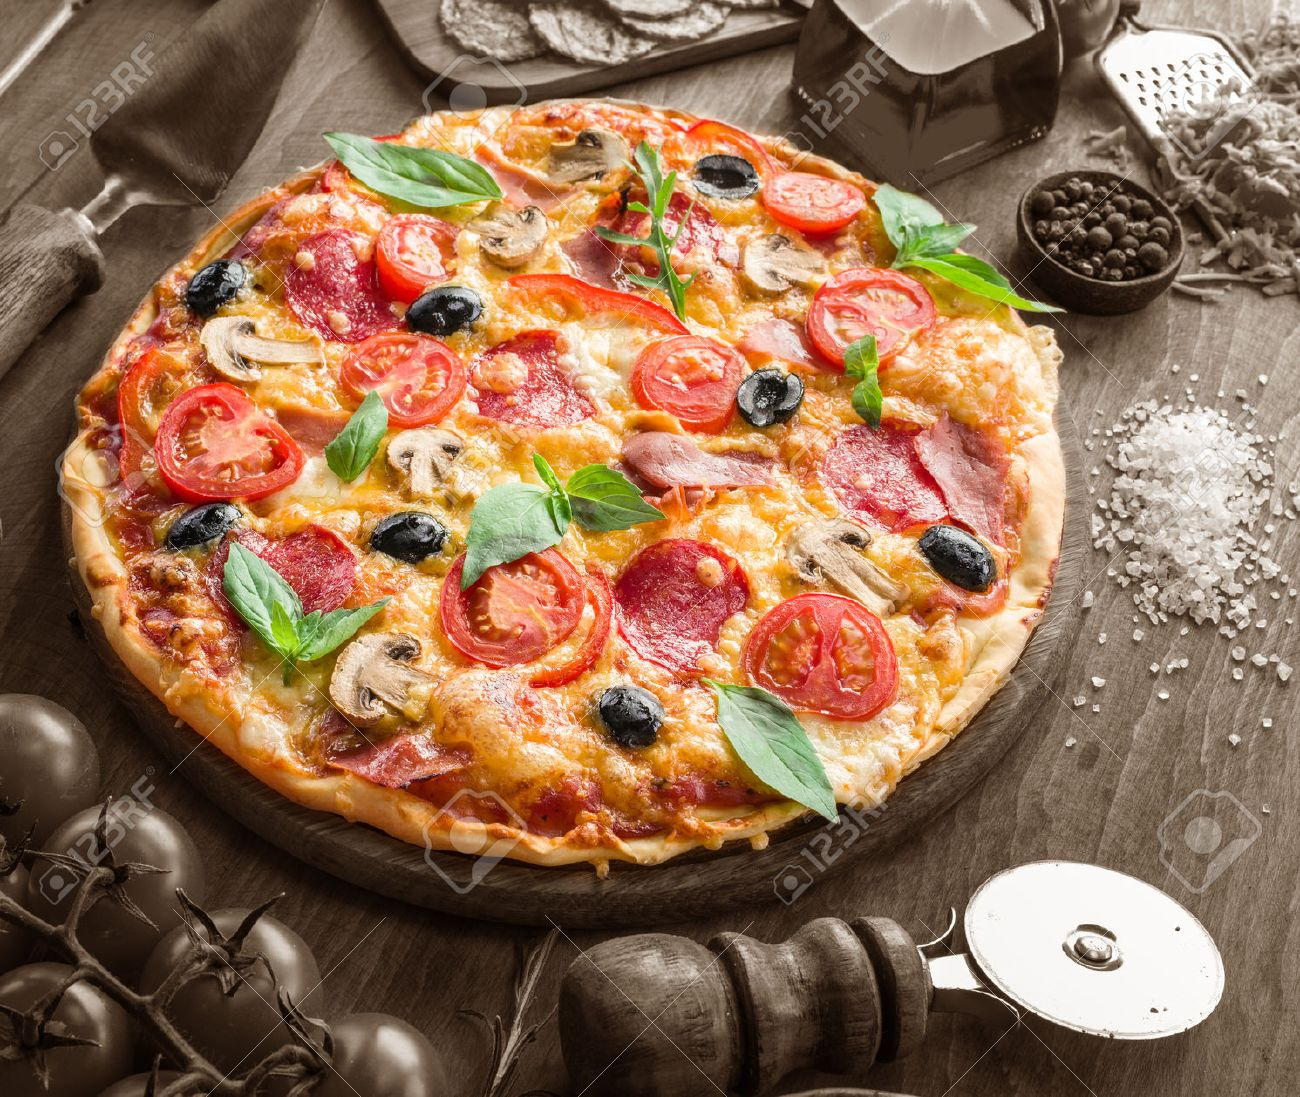 Pizza with mushrooms, salami and tomatoes. Top view. Standard-Bild - 46547661